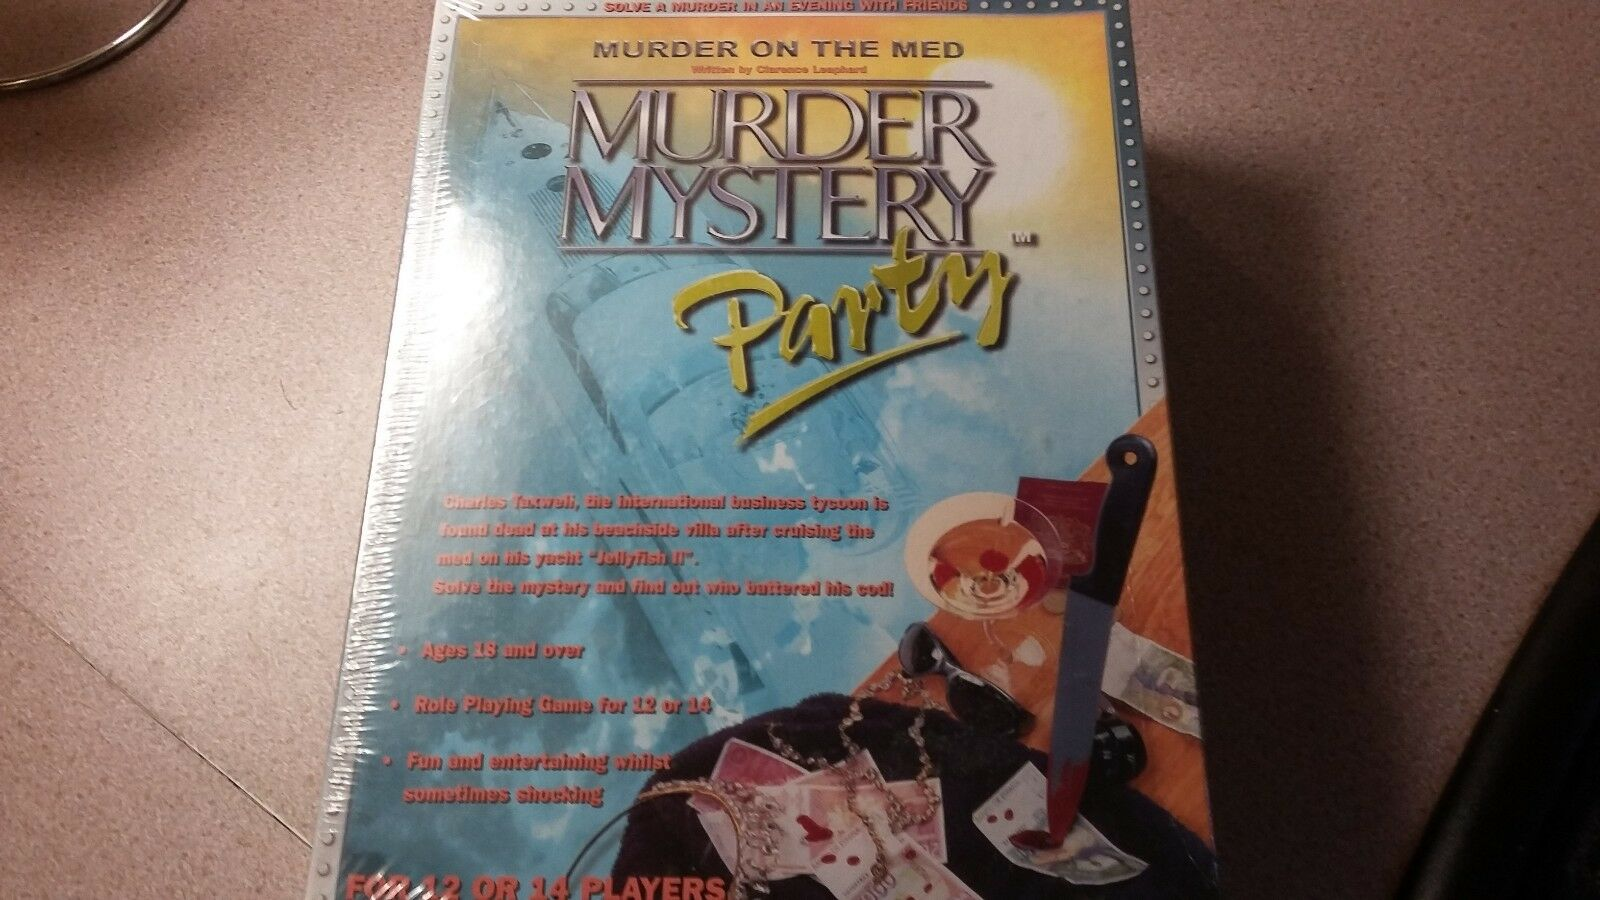 Brand New Factory Sealed Murder on the Med murder mystery party 12 or 14 players